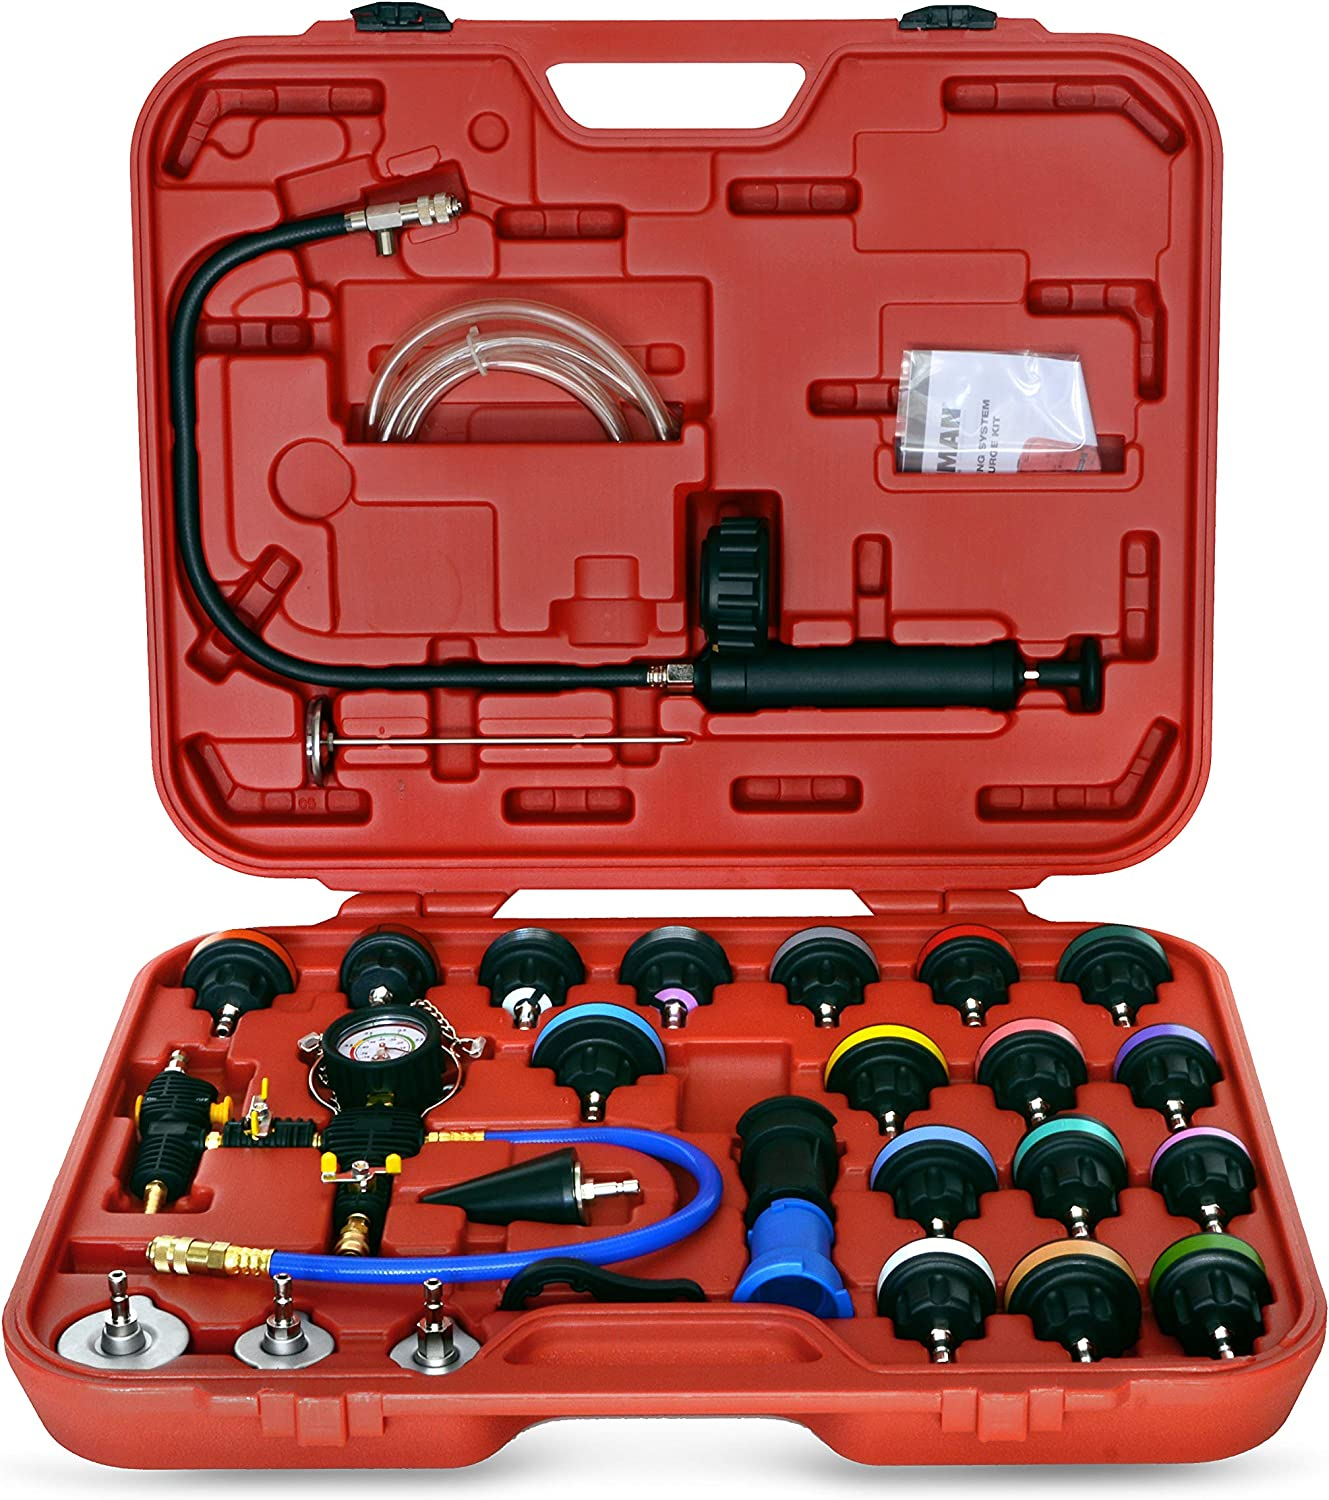 Master Cooling System Test and Purge Auto Kit by Steelman, 27-Piece Kit, Leak and Pressure Test, Vacuum Purge Kit, Storage Case Included